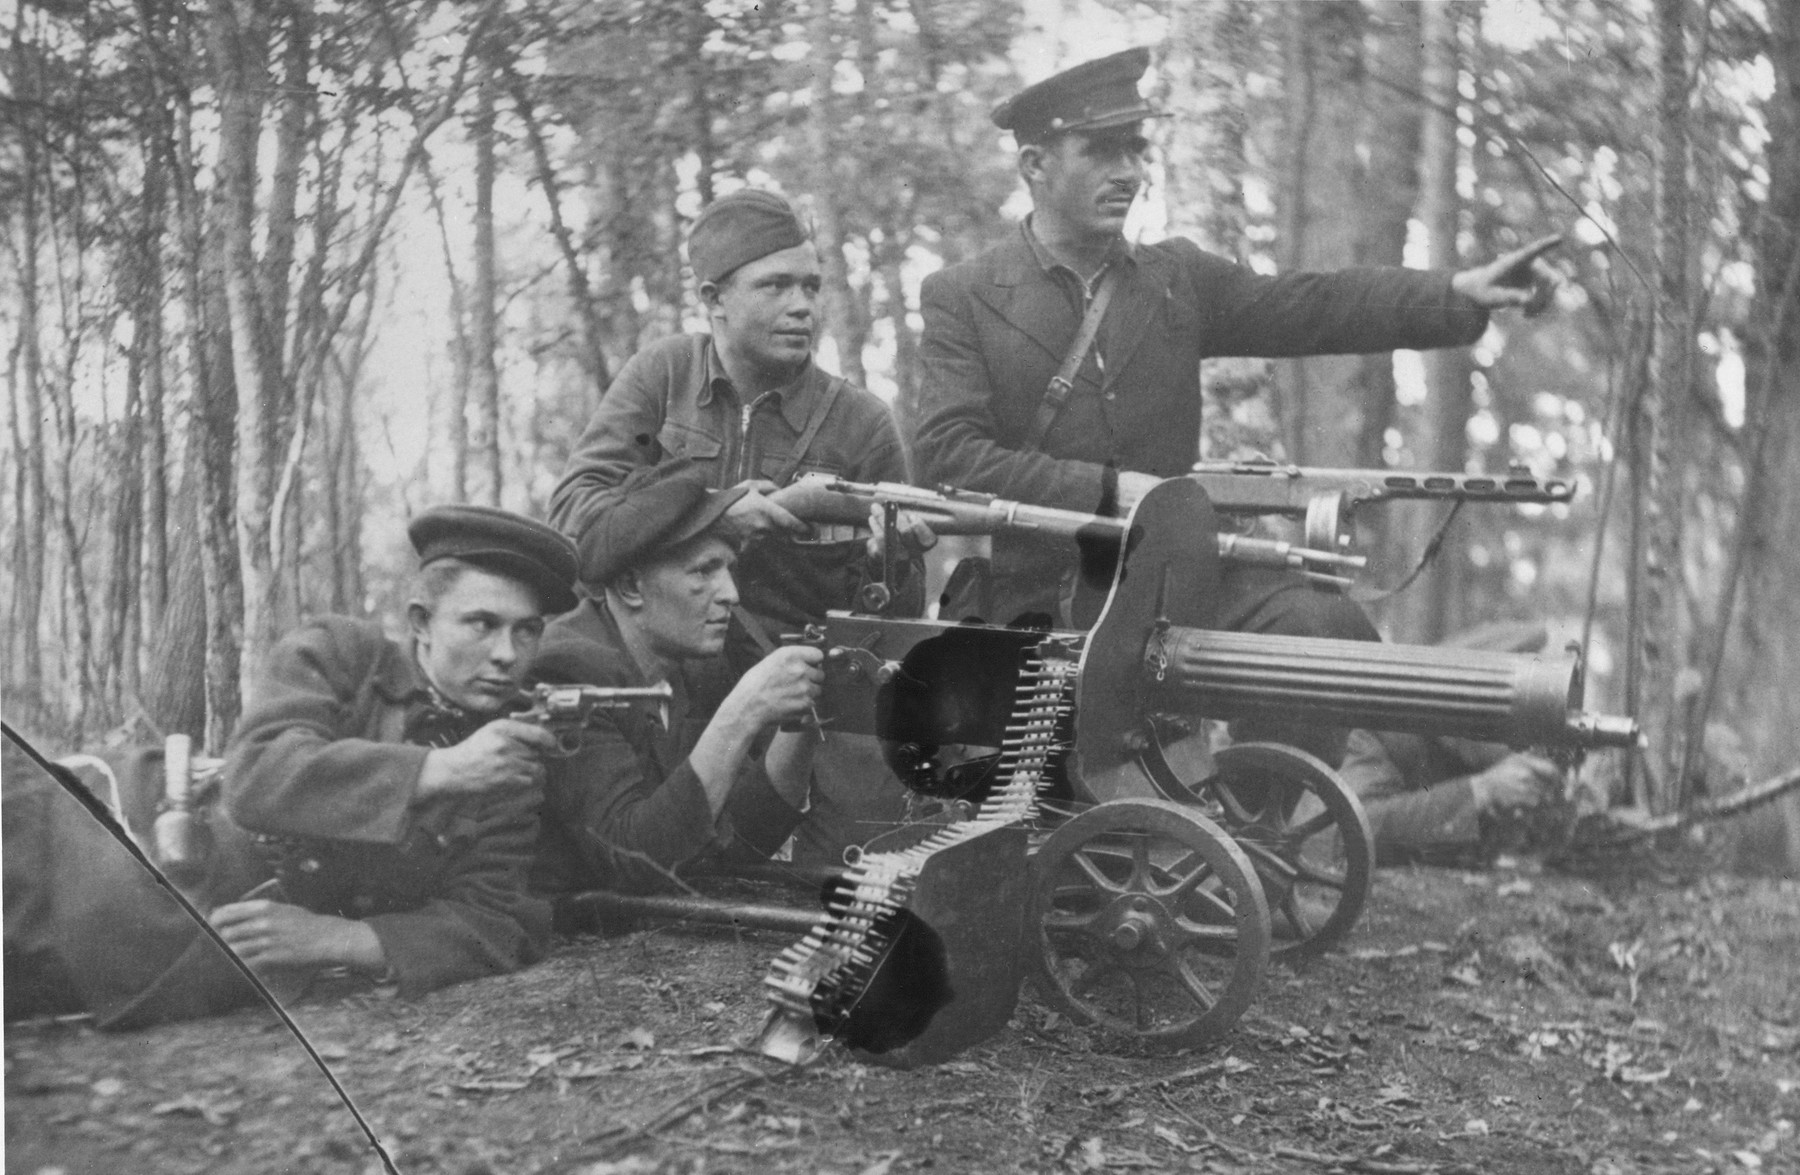 Members of the Shish detachment of the Molotov partisan brigade pose in the forest with their weapons.